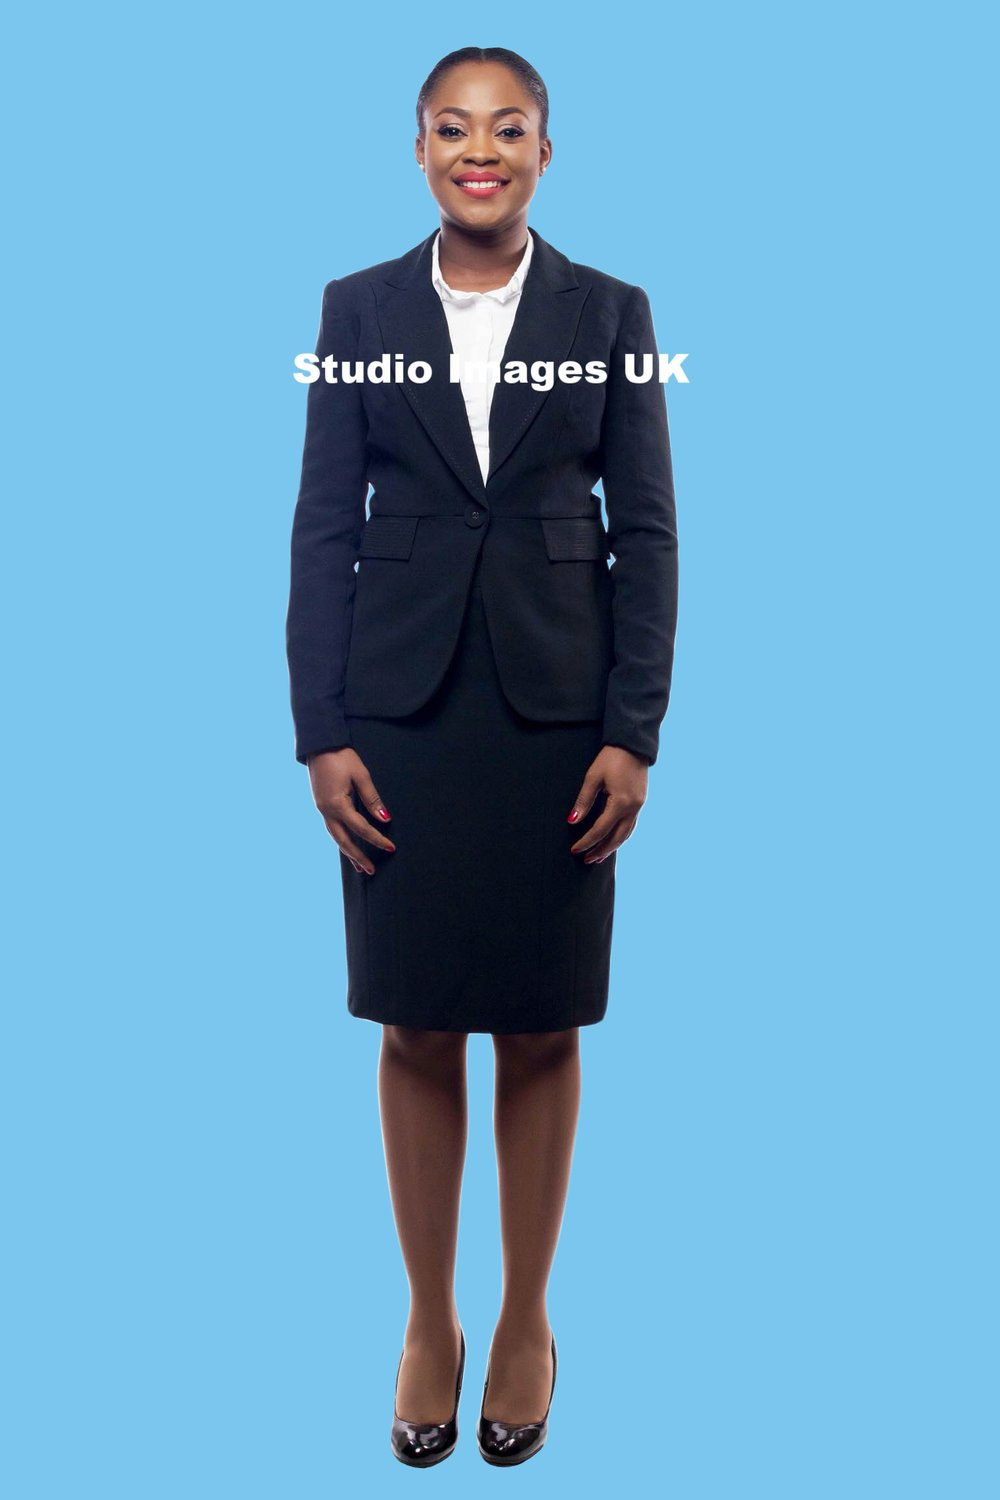 - Send us one full length and one half length image of yourself and we will add the blue backdrop for you.